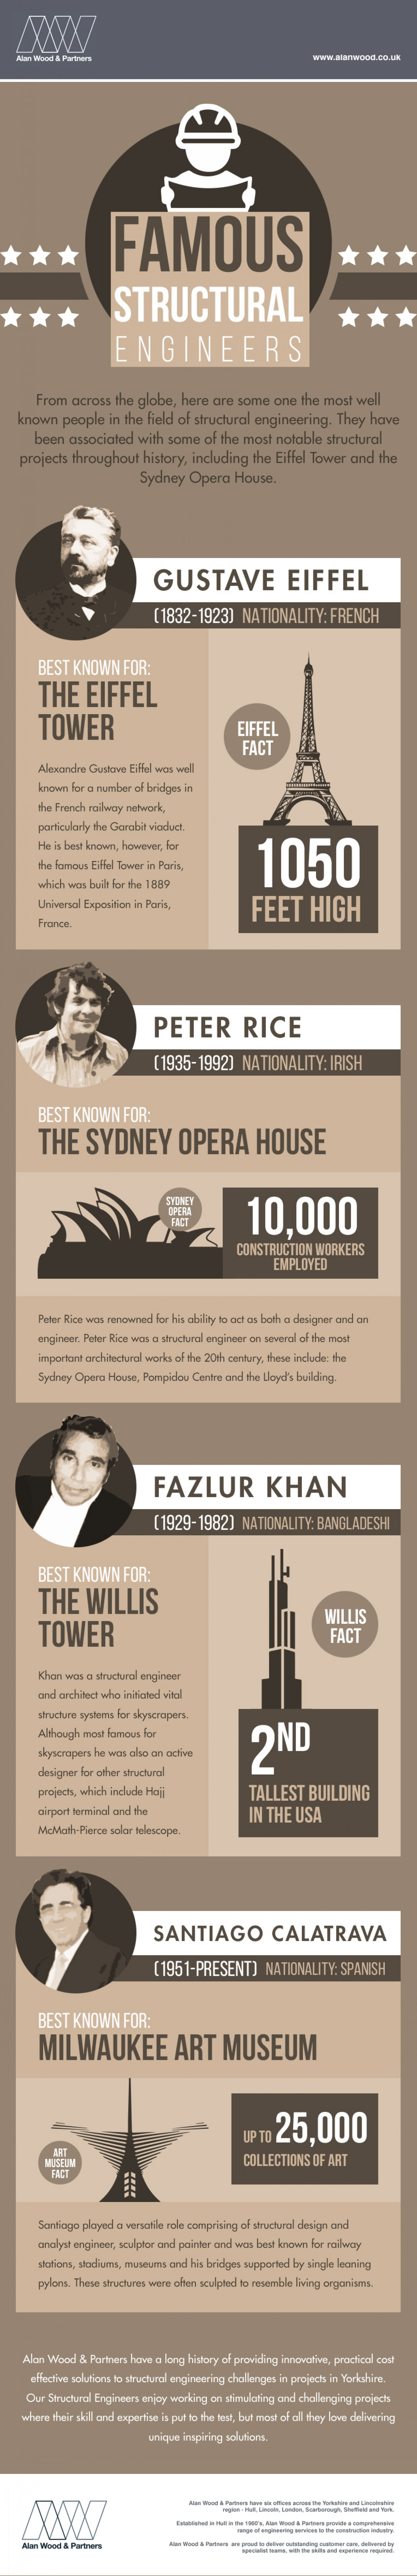 Famous Structural Engineers Infographic